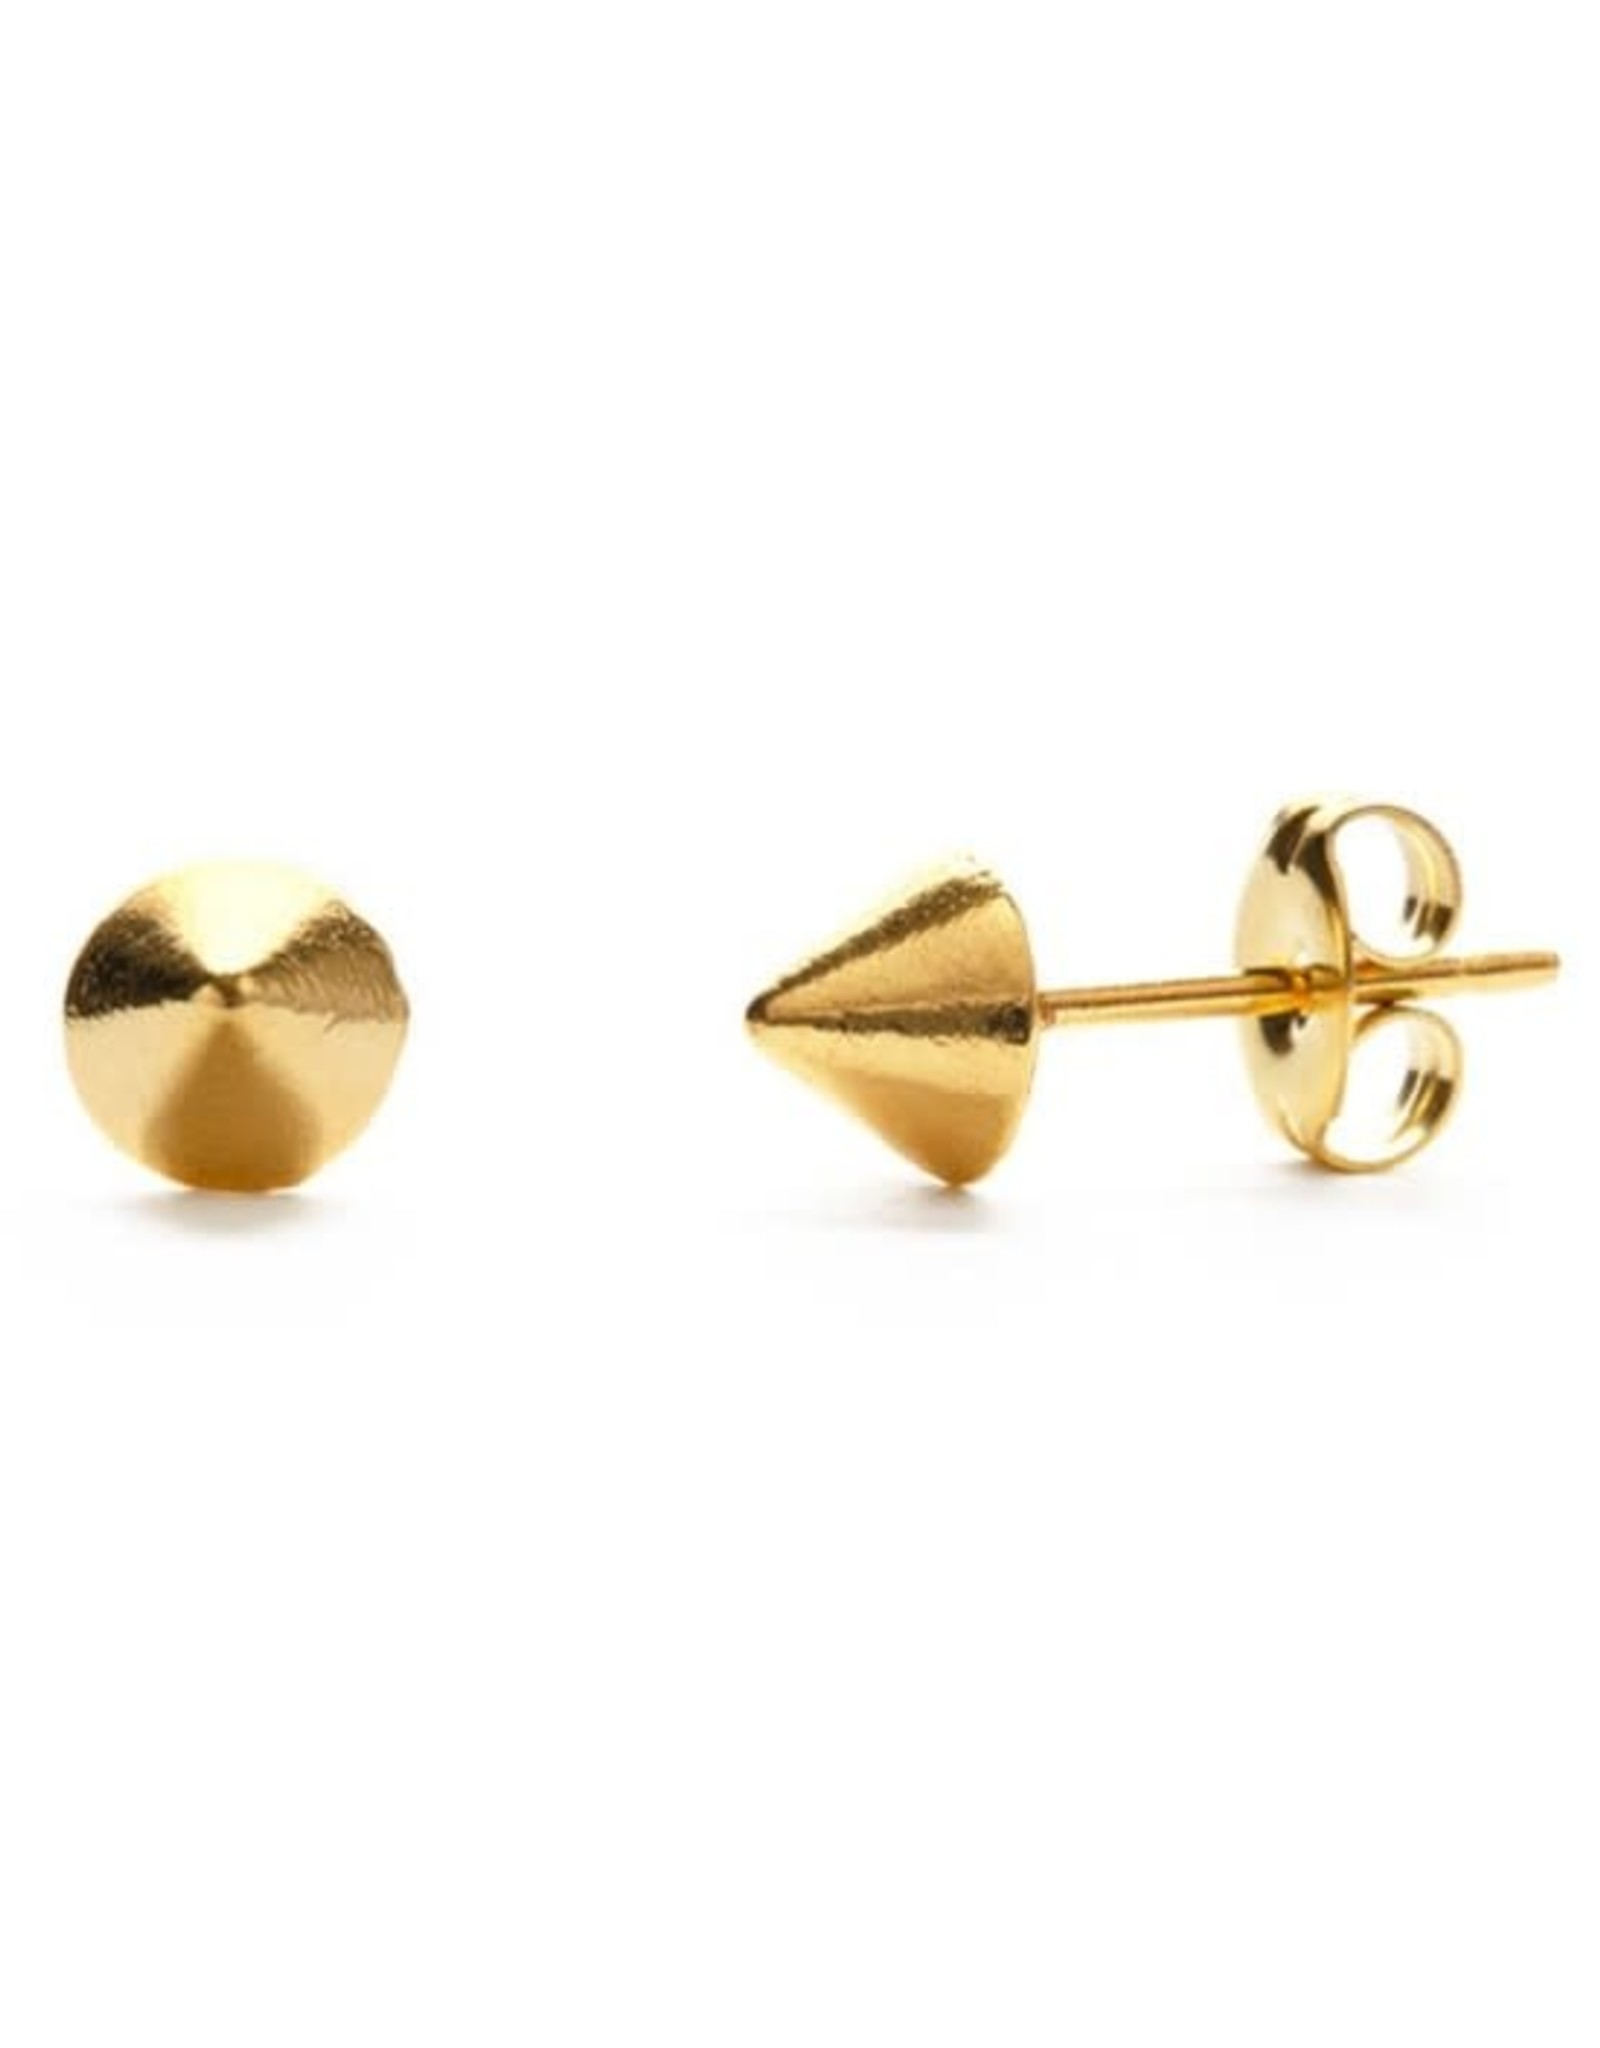 AMANO TRADING INC AMANO GOLD GEO CONE STUDS